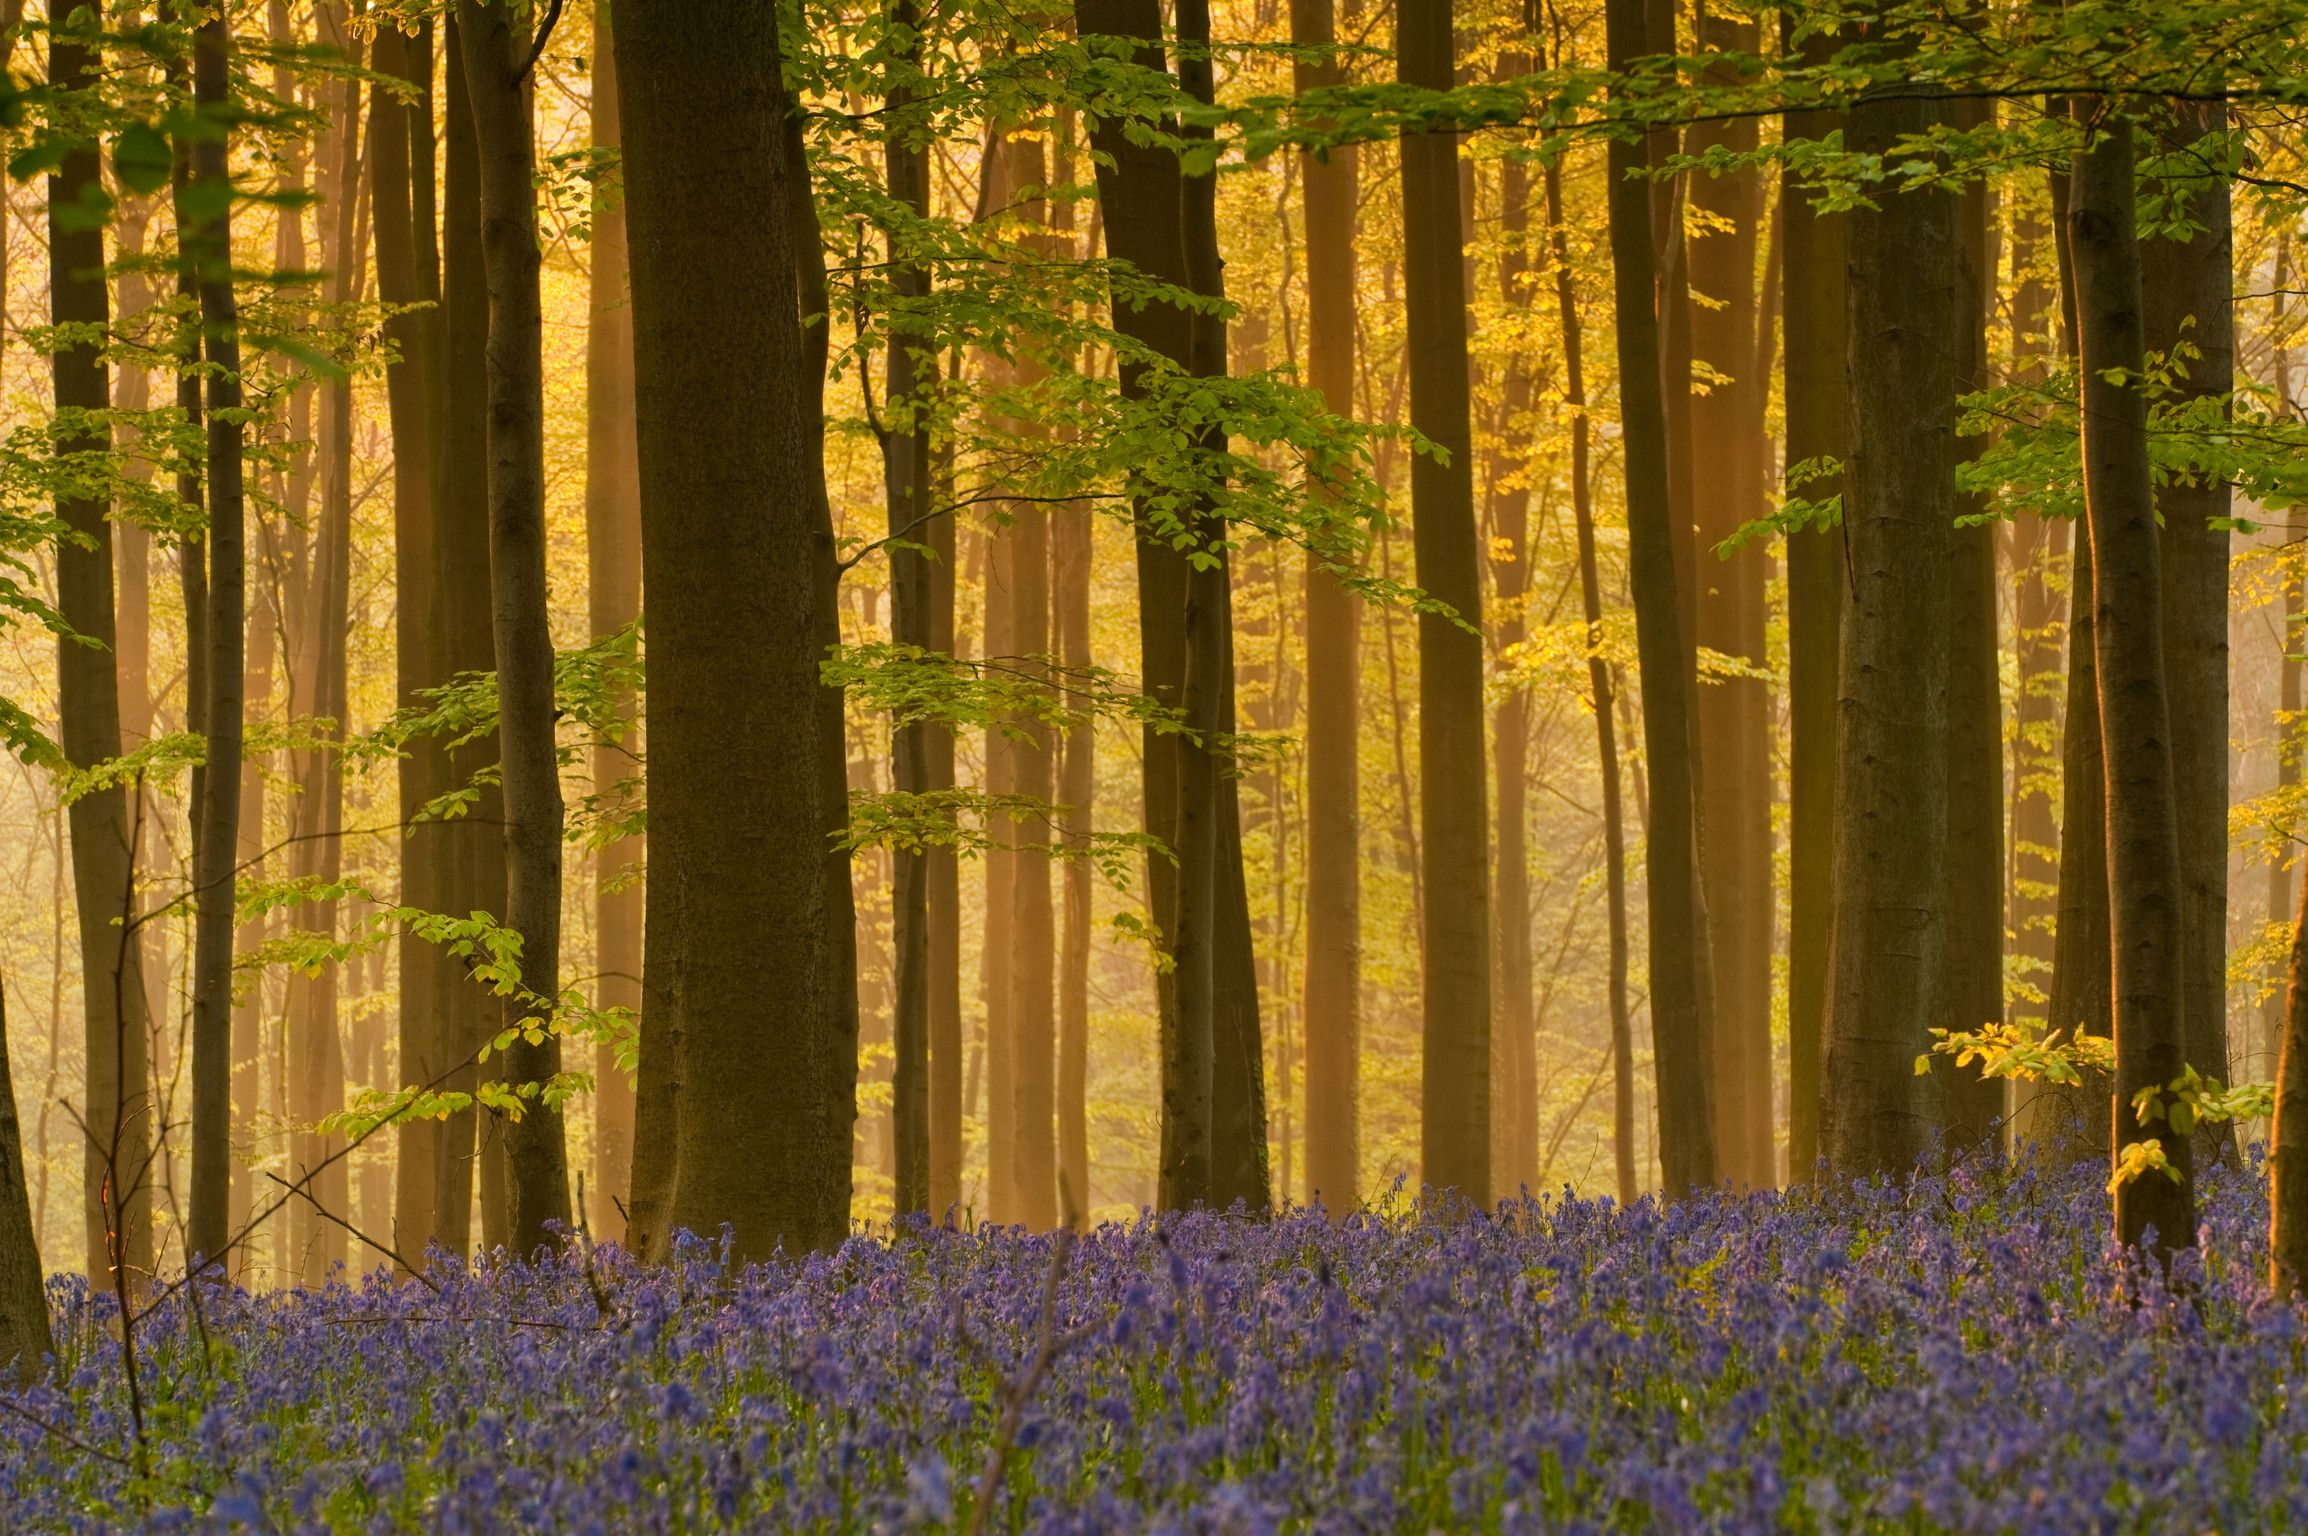 Bluebell carpets in Belgium's Hallerbos forest